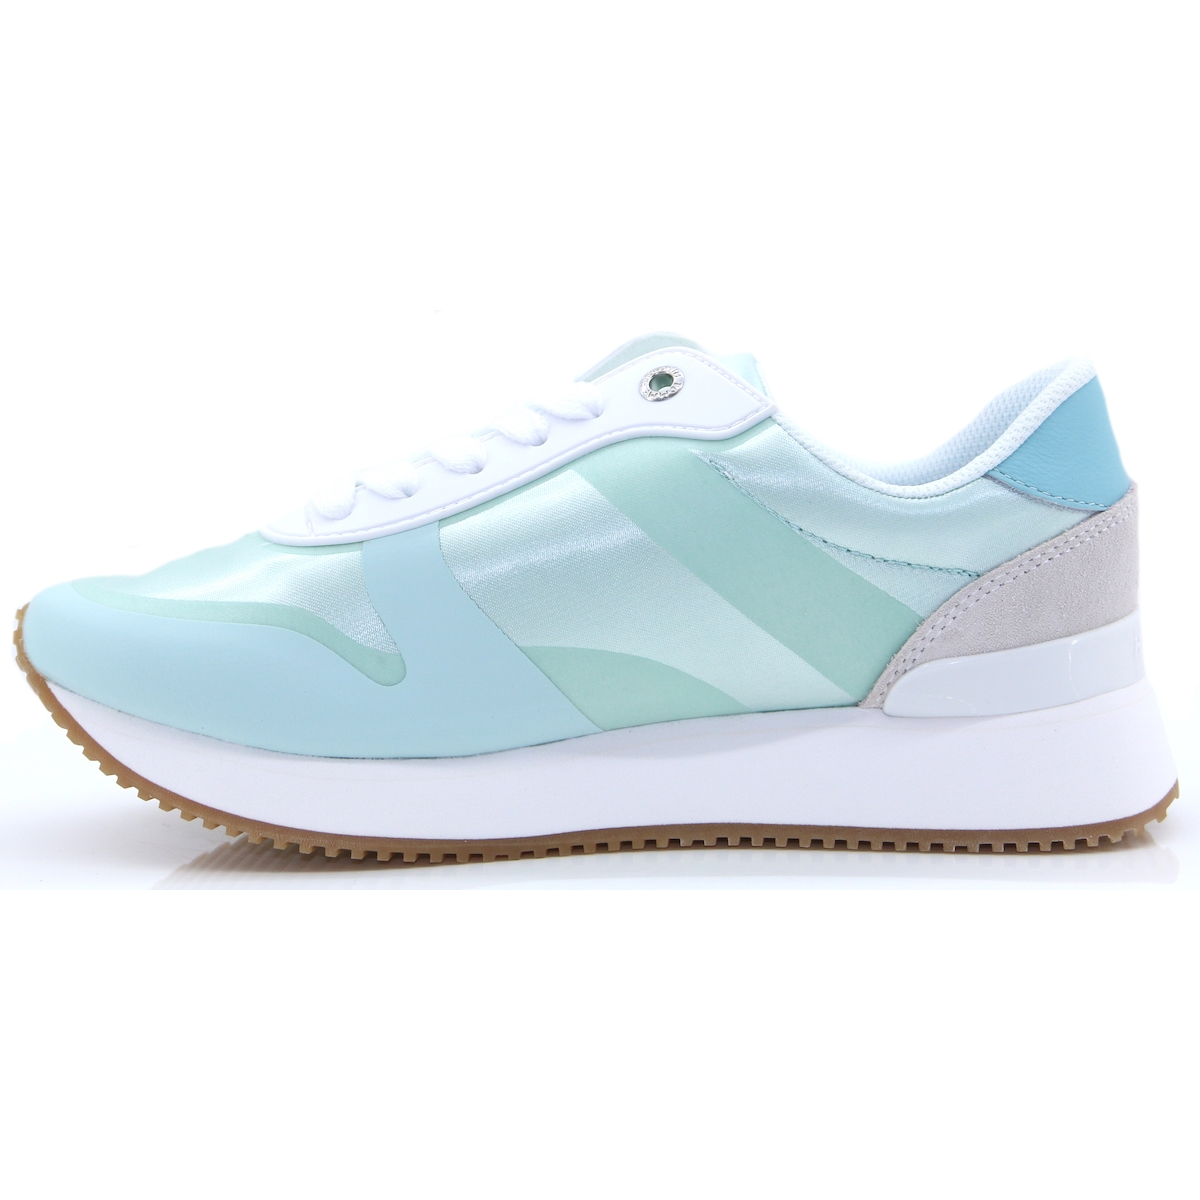 53ba8129ee0e Pop Colour Satin City Sneaker - Tommy Hilfiger AQUA HAZE TRAINERS - Panache  Shoe Company